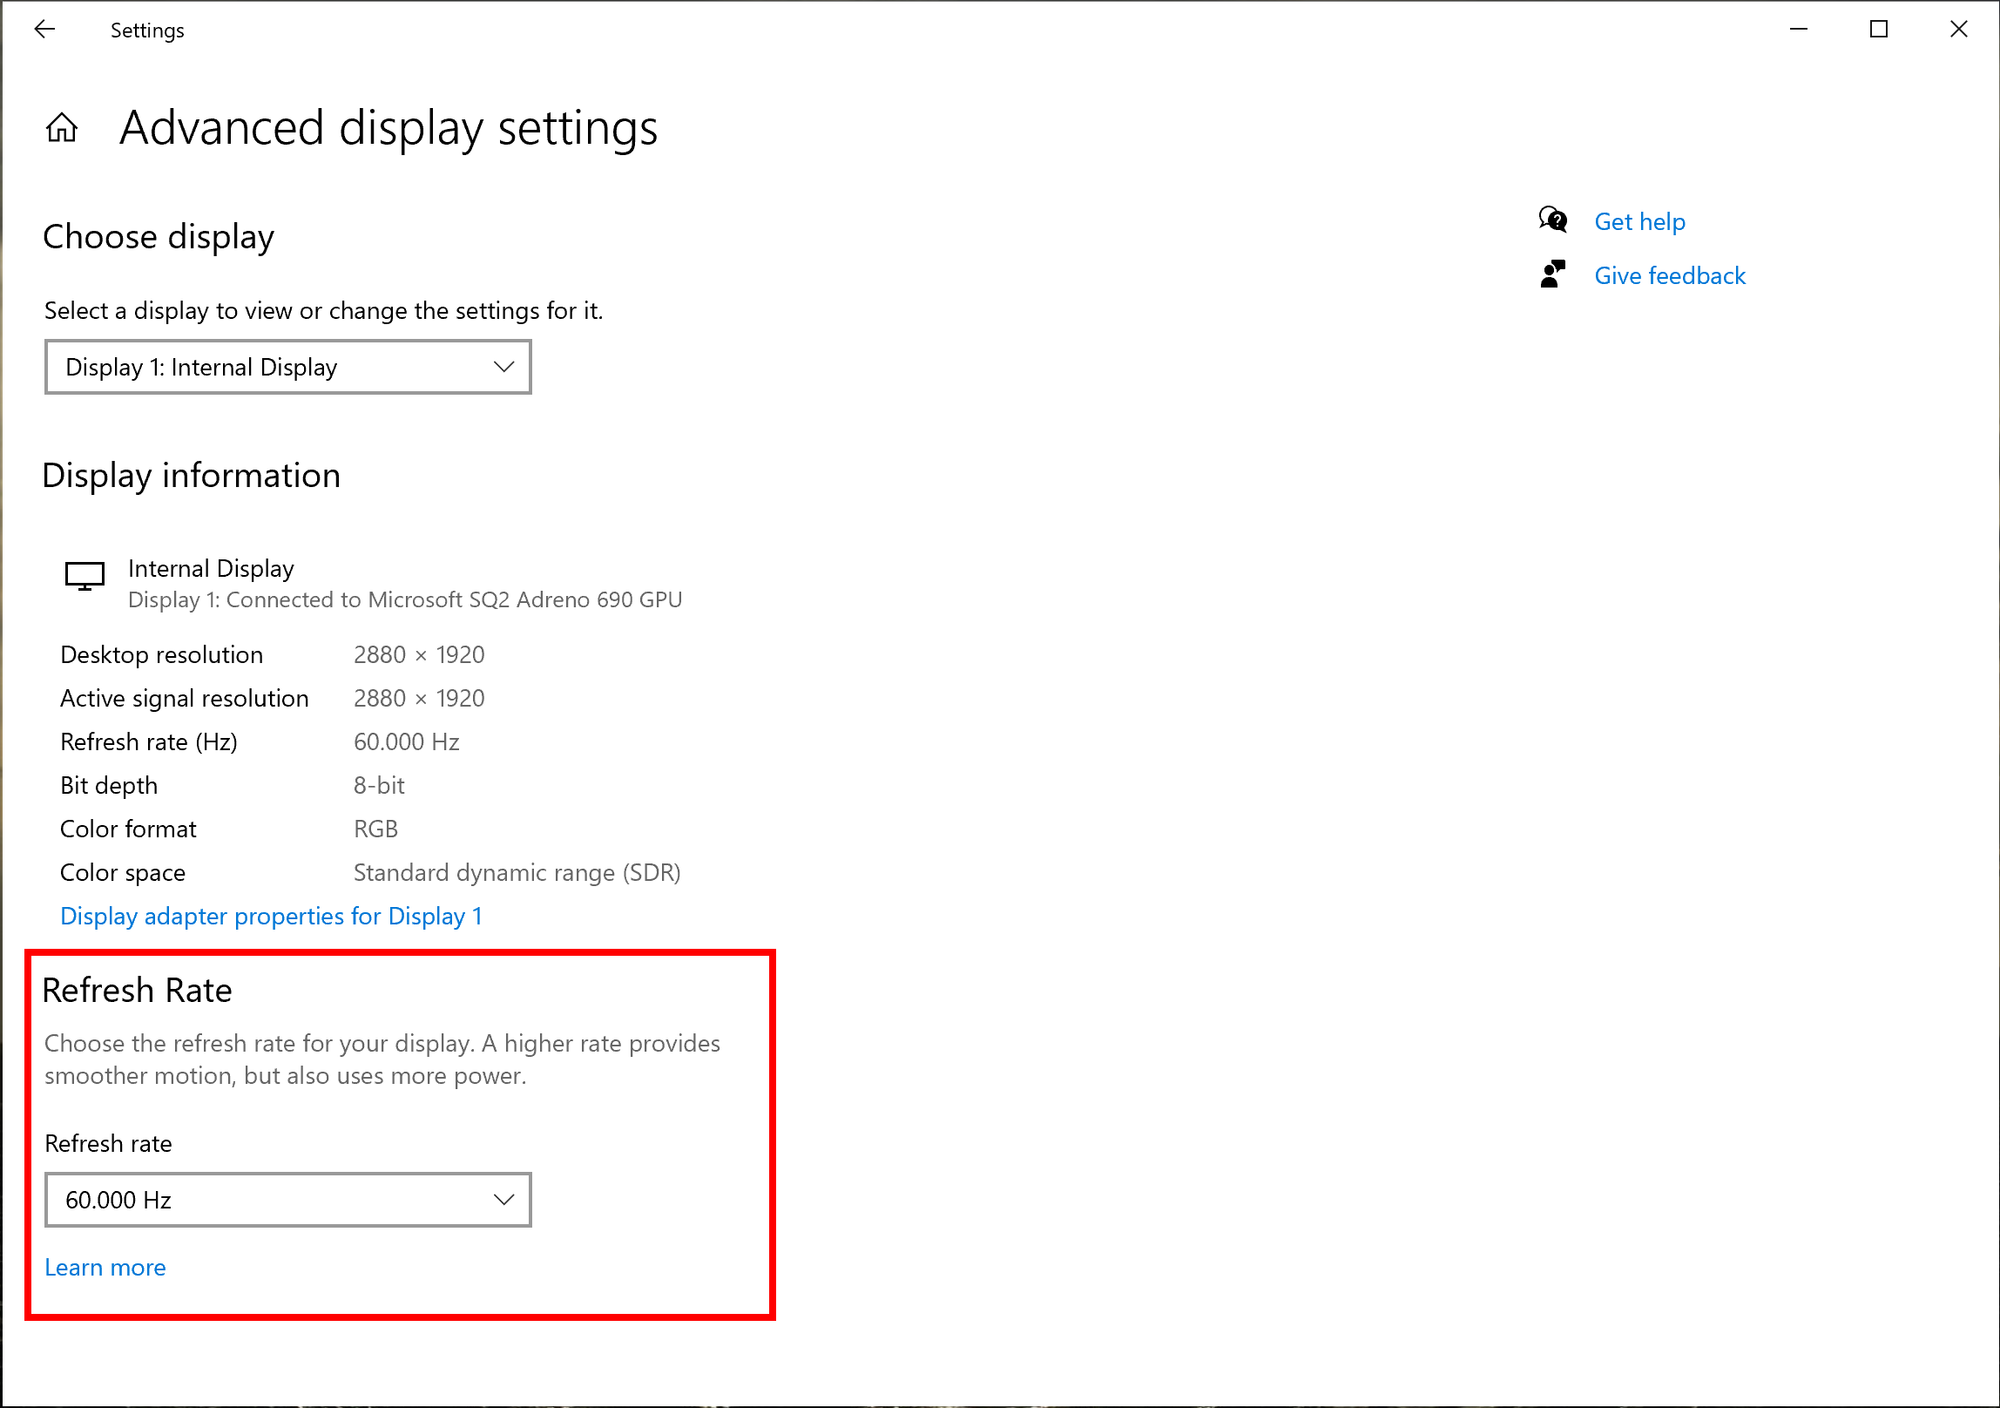 Windows 10 Insider Preview Build 20236.1005 (rs_prerelease) - Oct. 16 refresh-rate.png